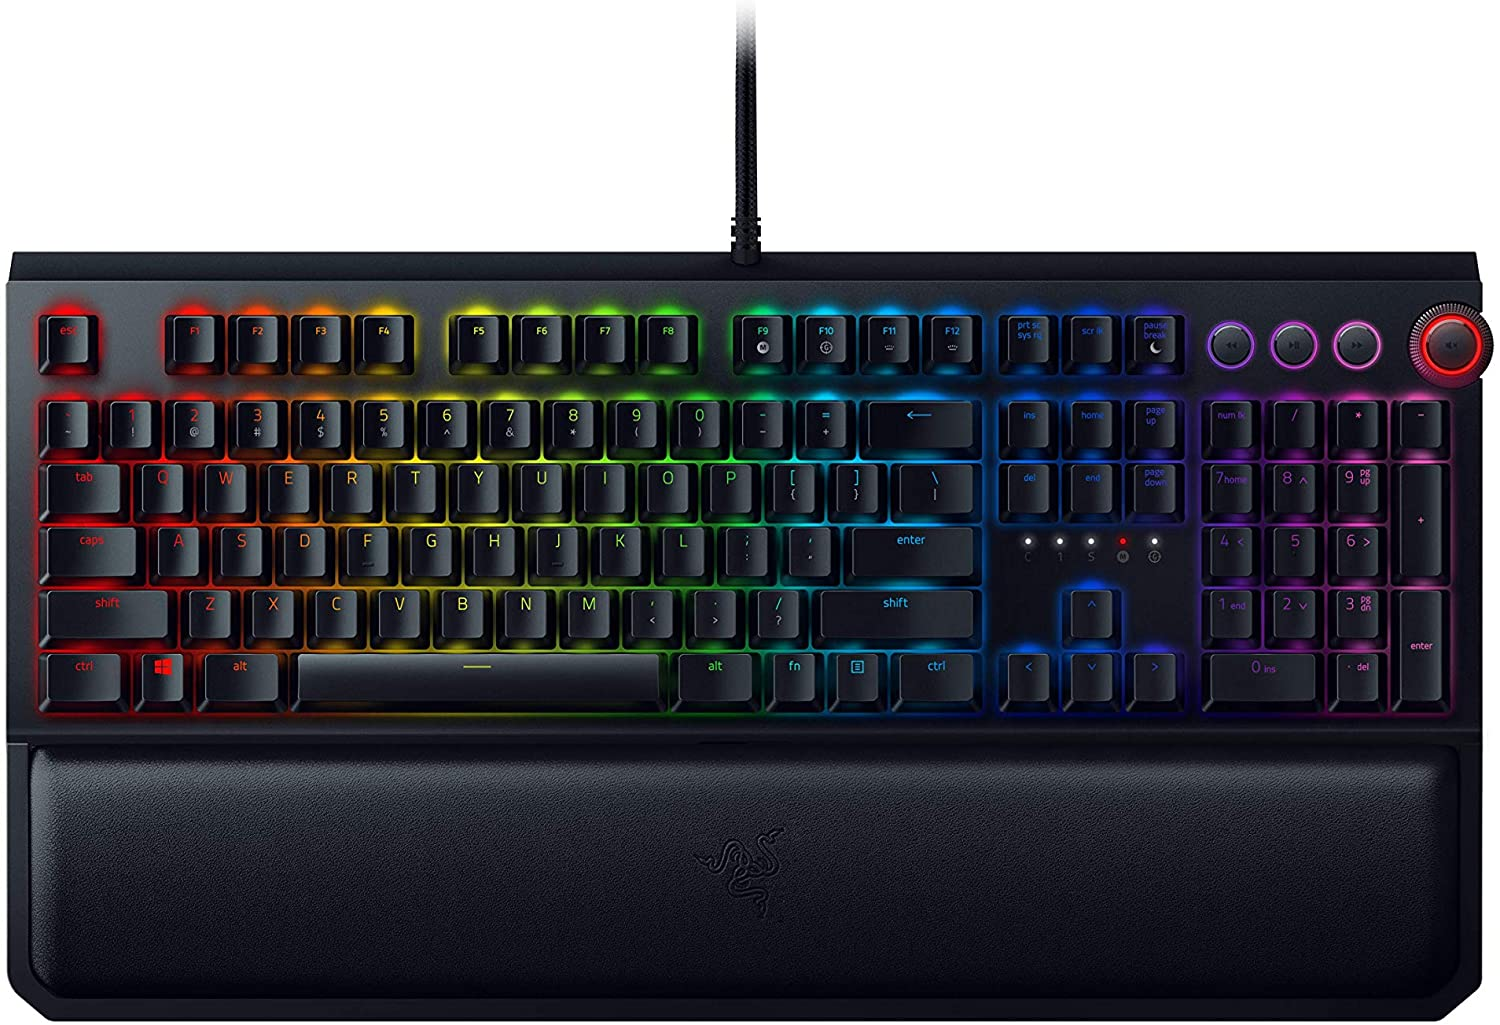 Razer BlackWidow Elite Mechanical Gaming Keyboard: Orange Mechanical Switches - Tactile & Silent - Chroma RGB Lighting - Magnetic Wrist Rest - Dedicated Media Keys & Dial - USB Passthrough